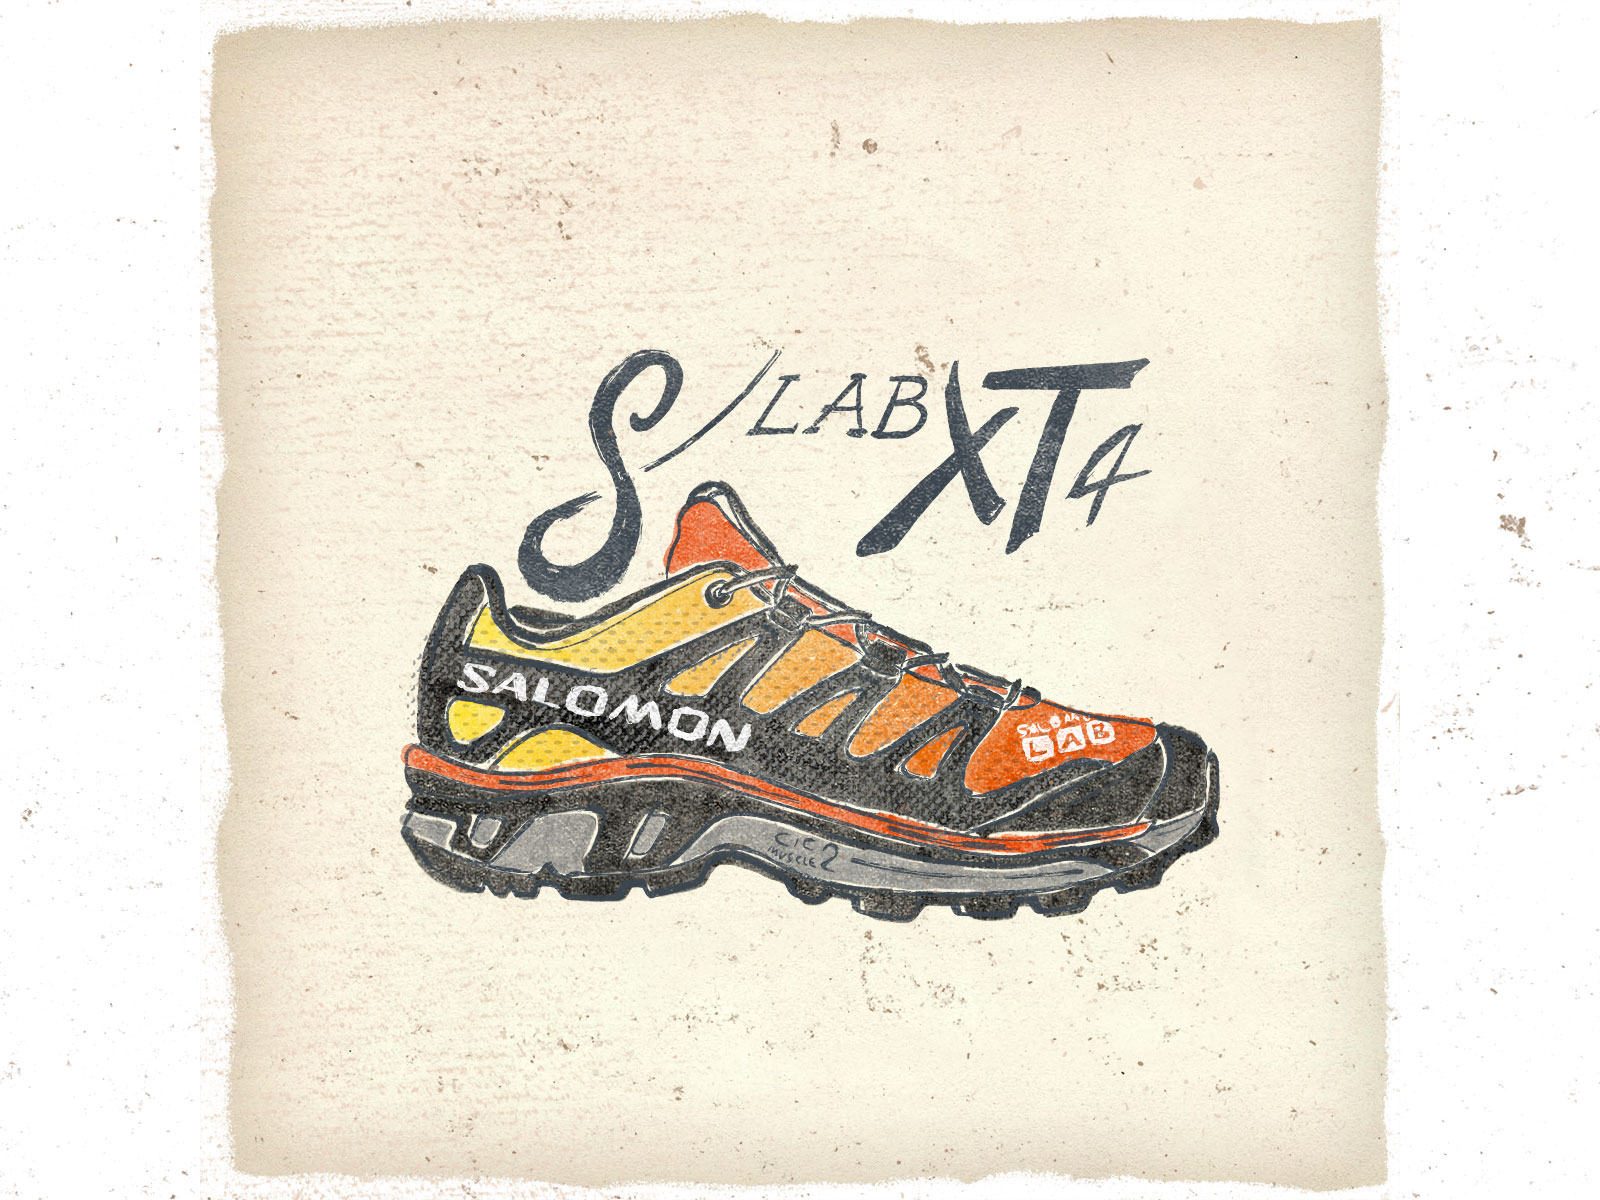 [OTF]-034-salomon-s-lab-xt-4